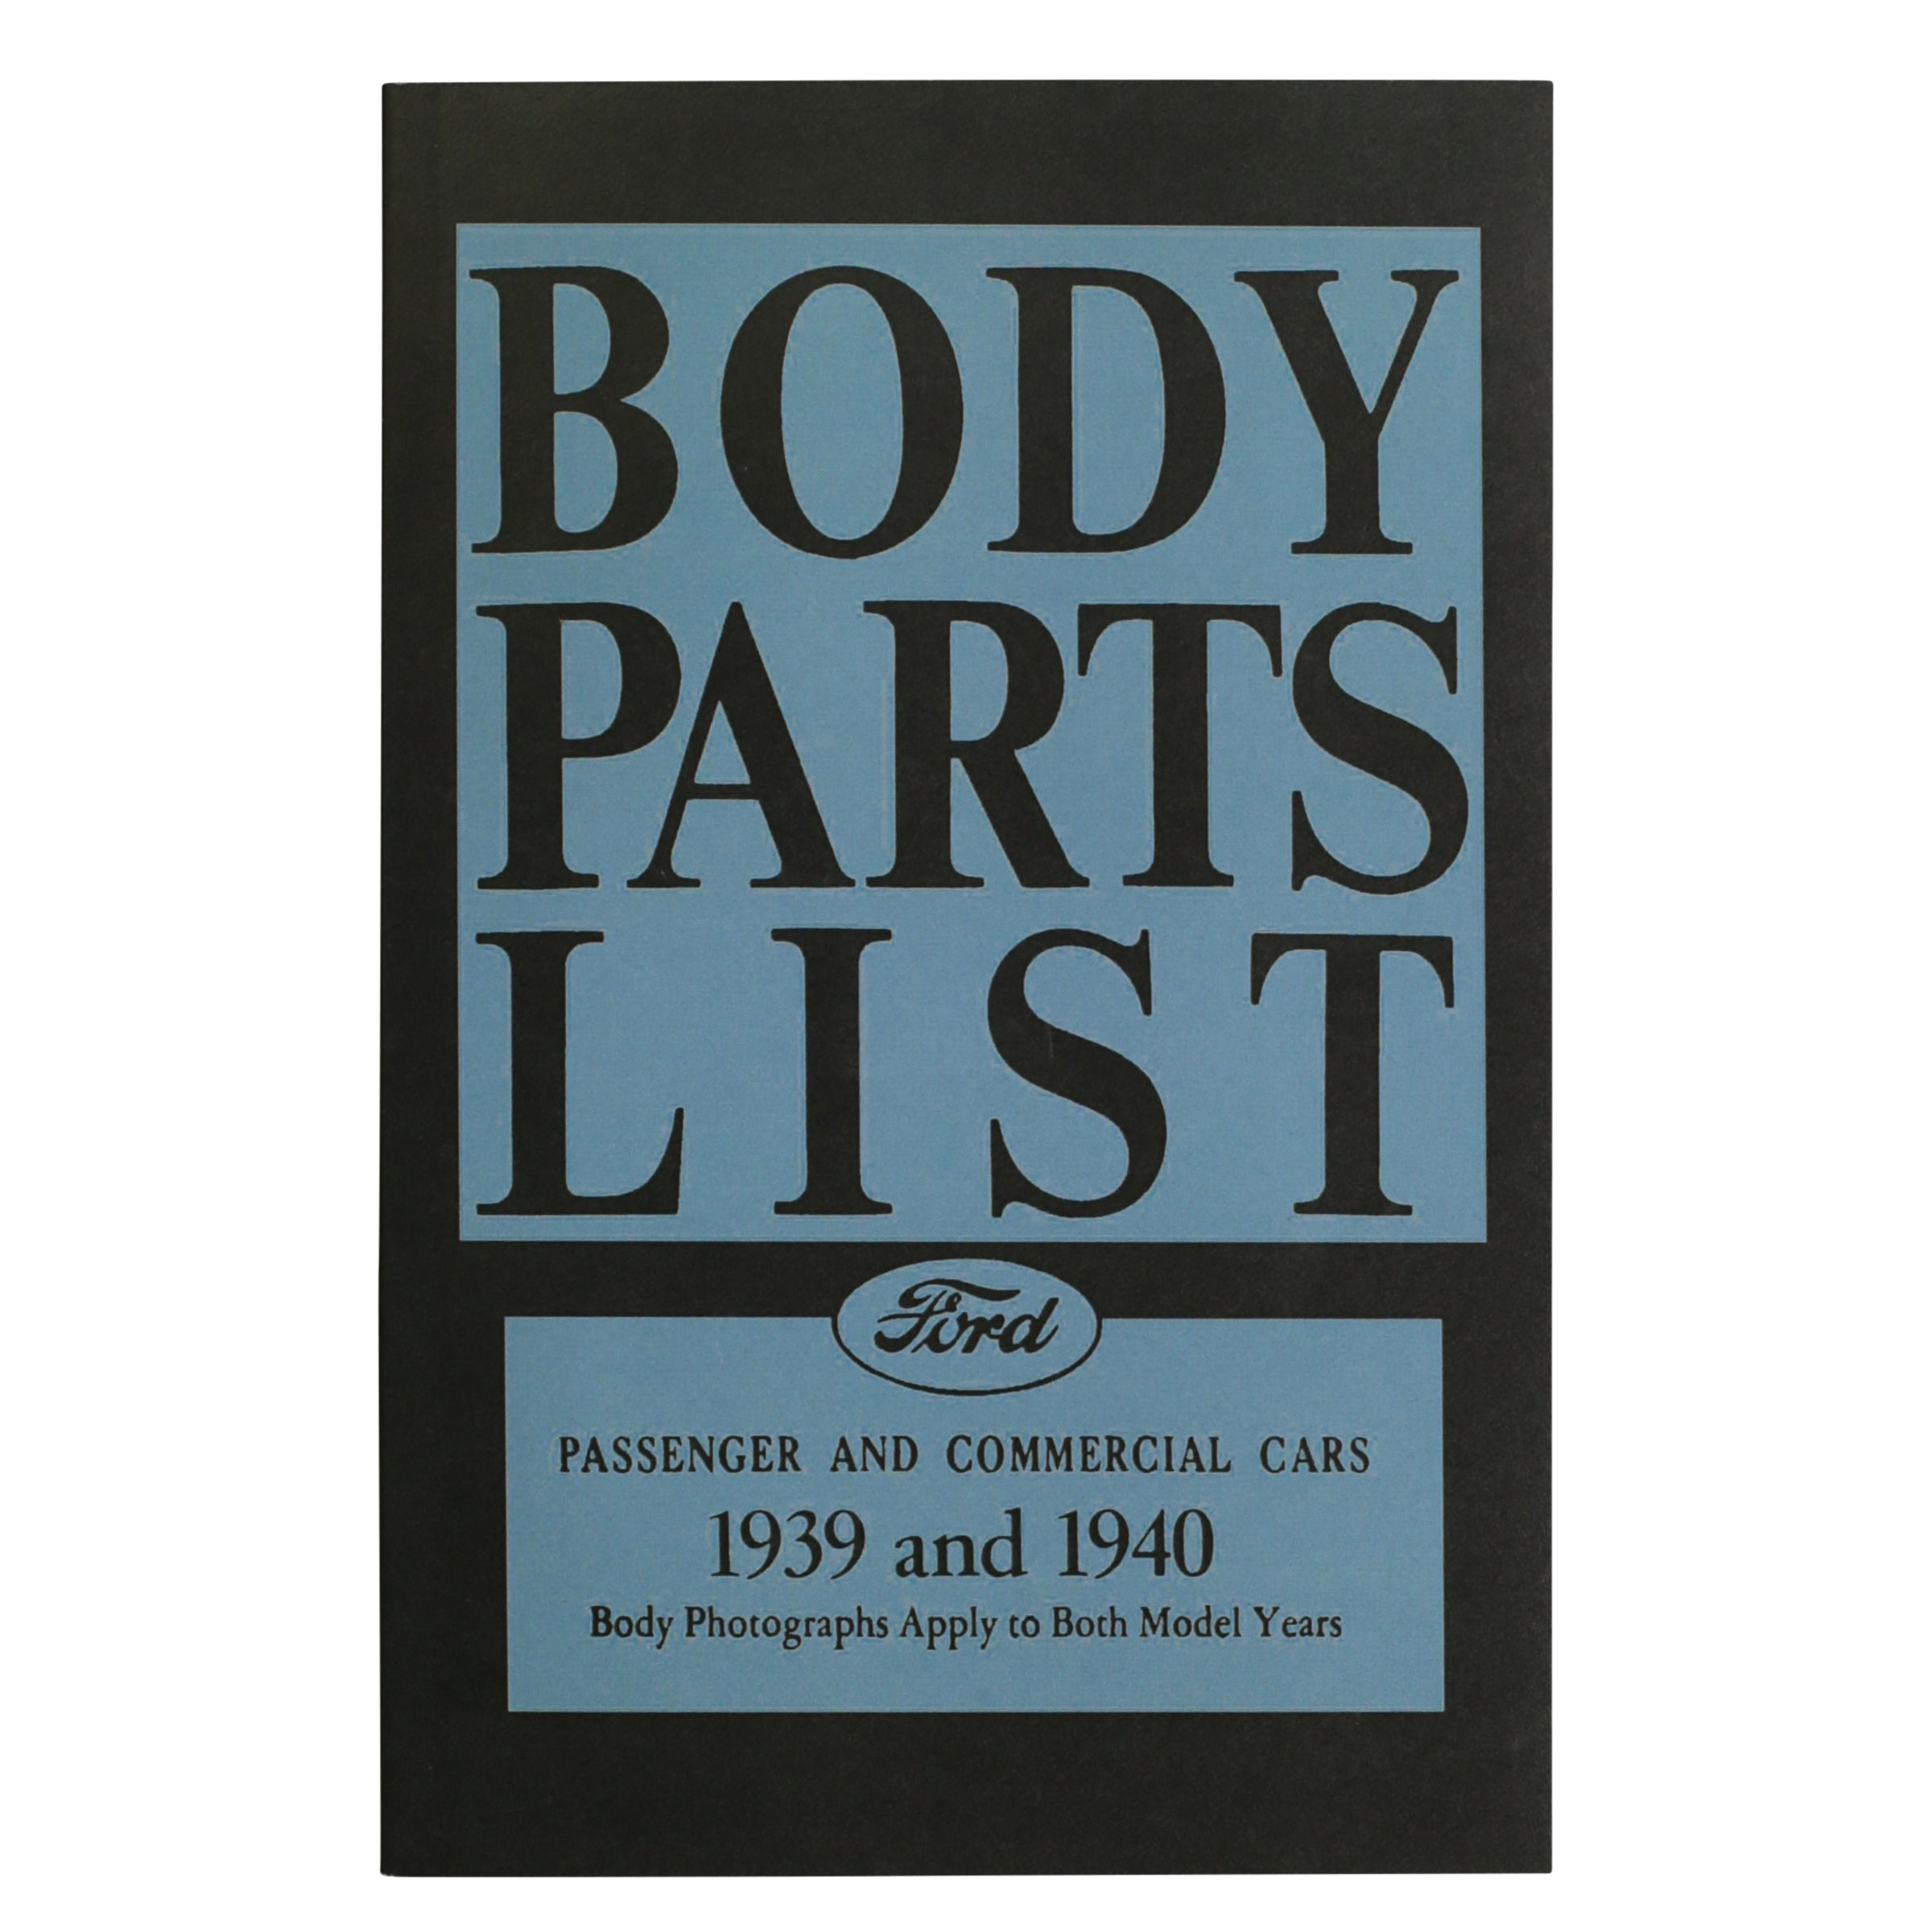 Ford Body Parts List • 1938-40 Ford